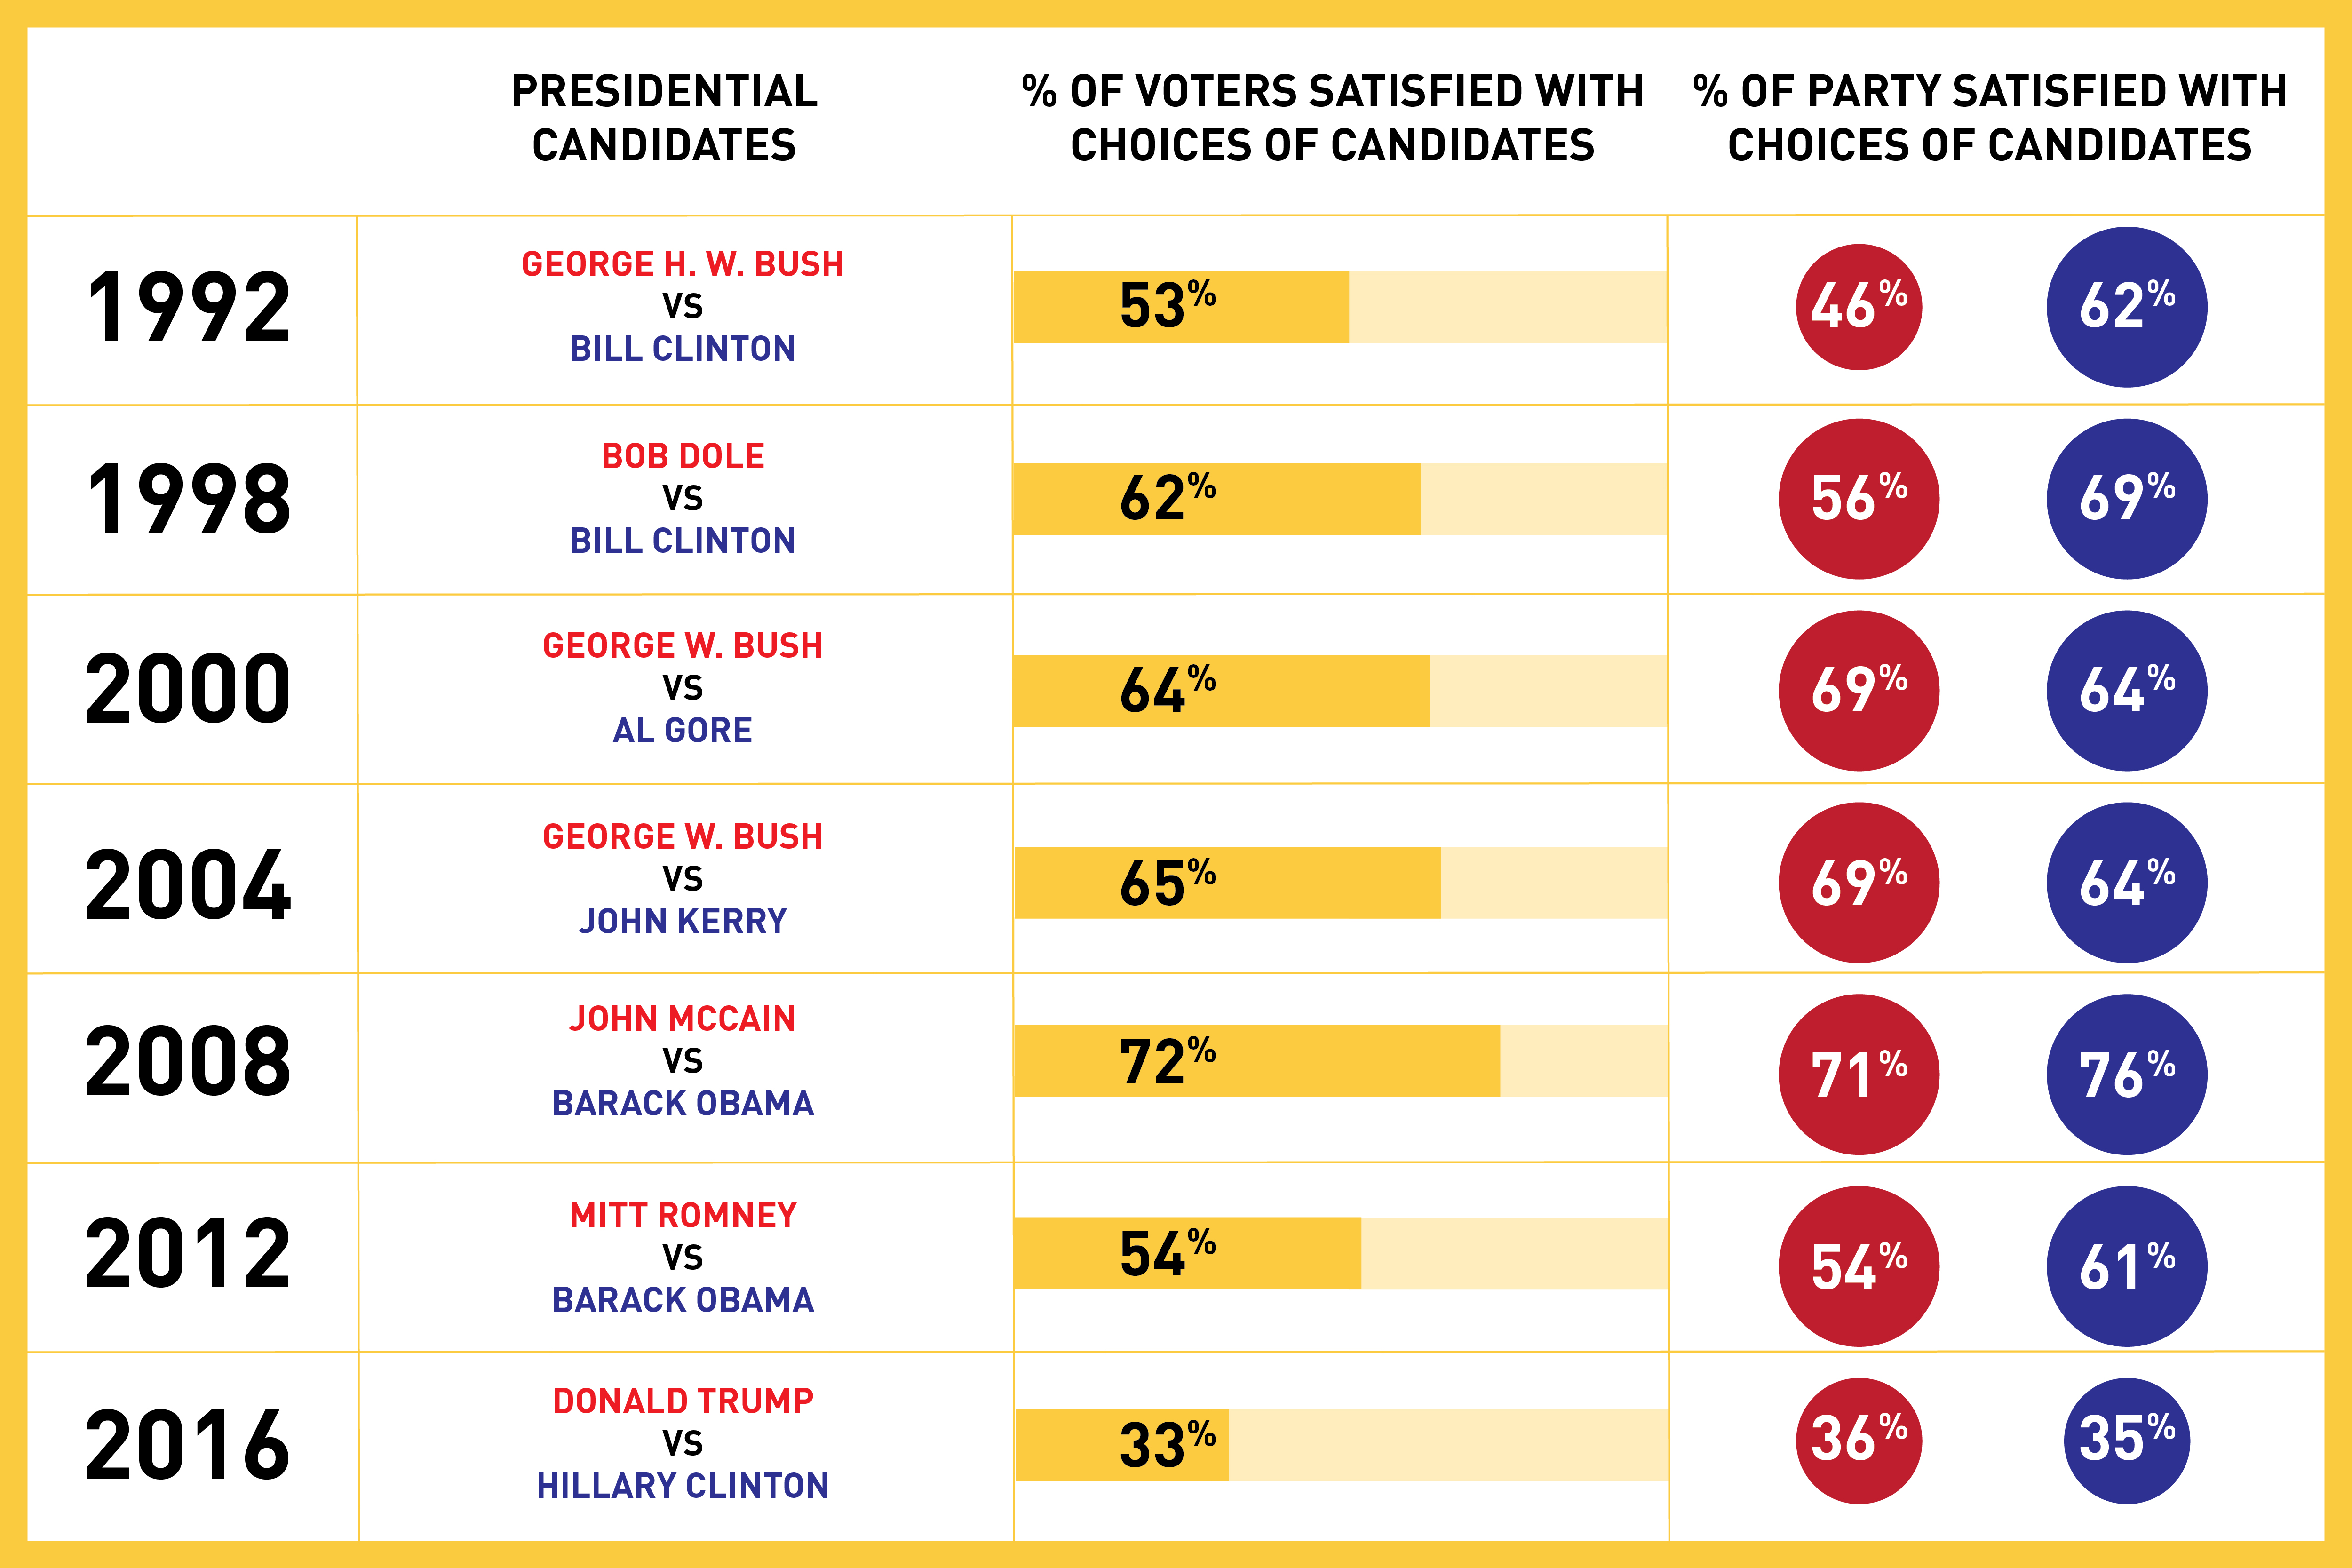 Voters dissatisfied with presidential candidates